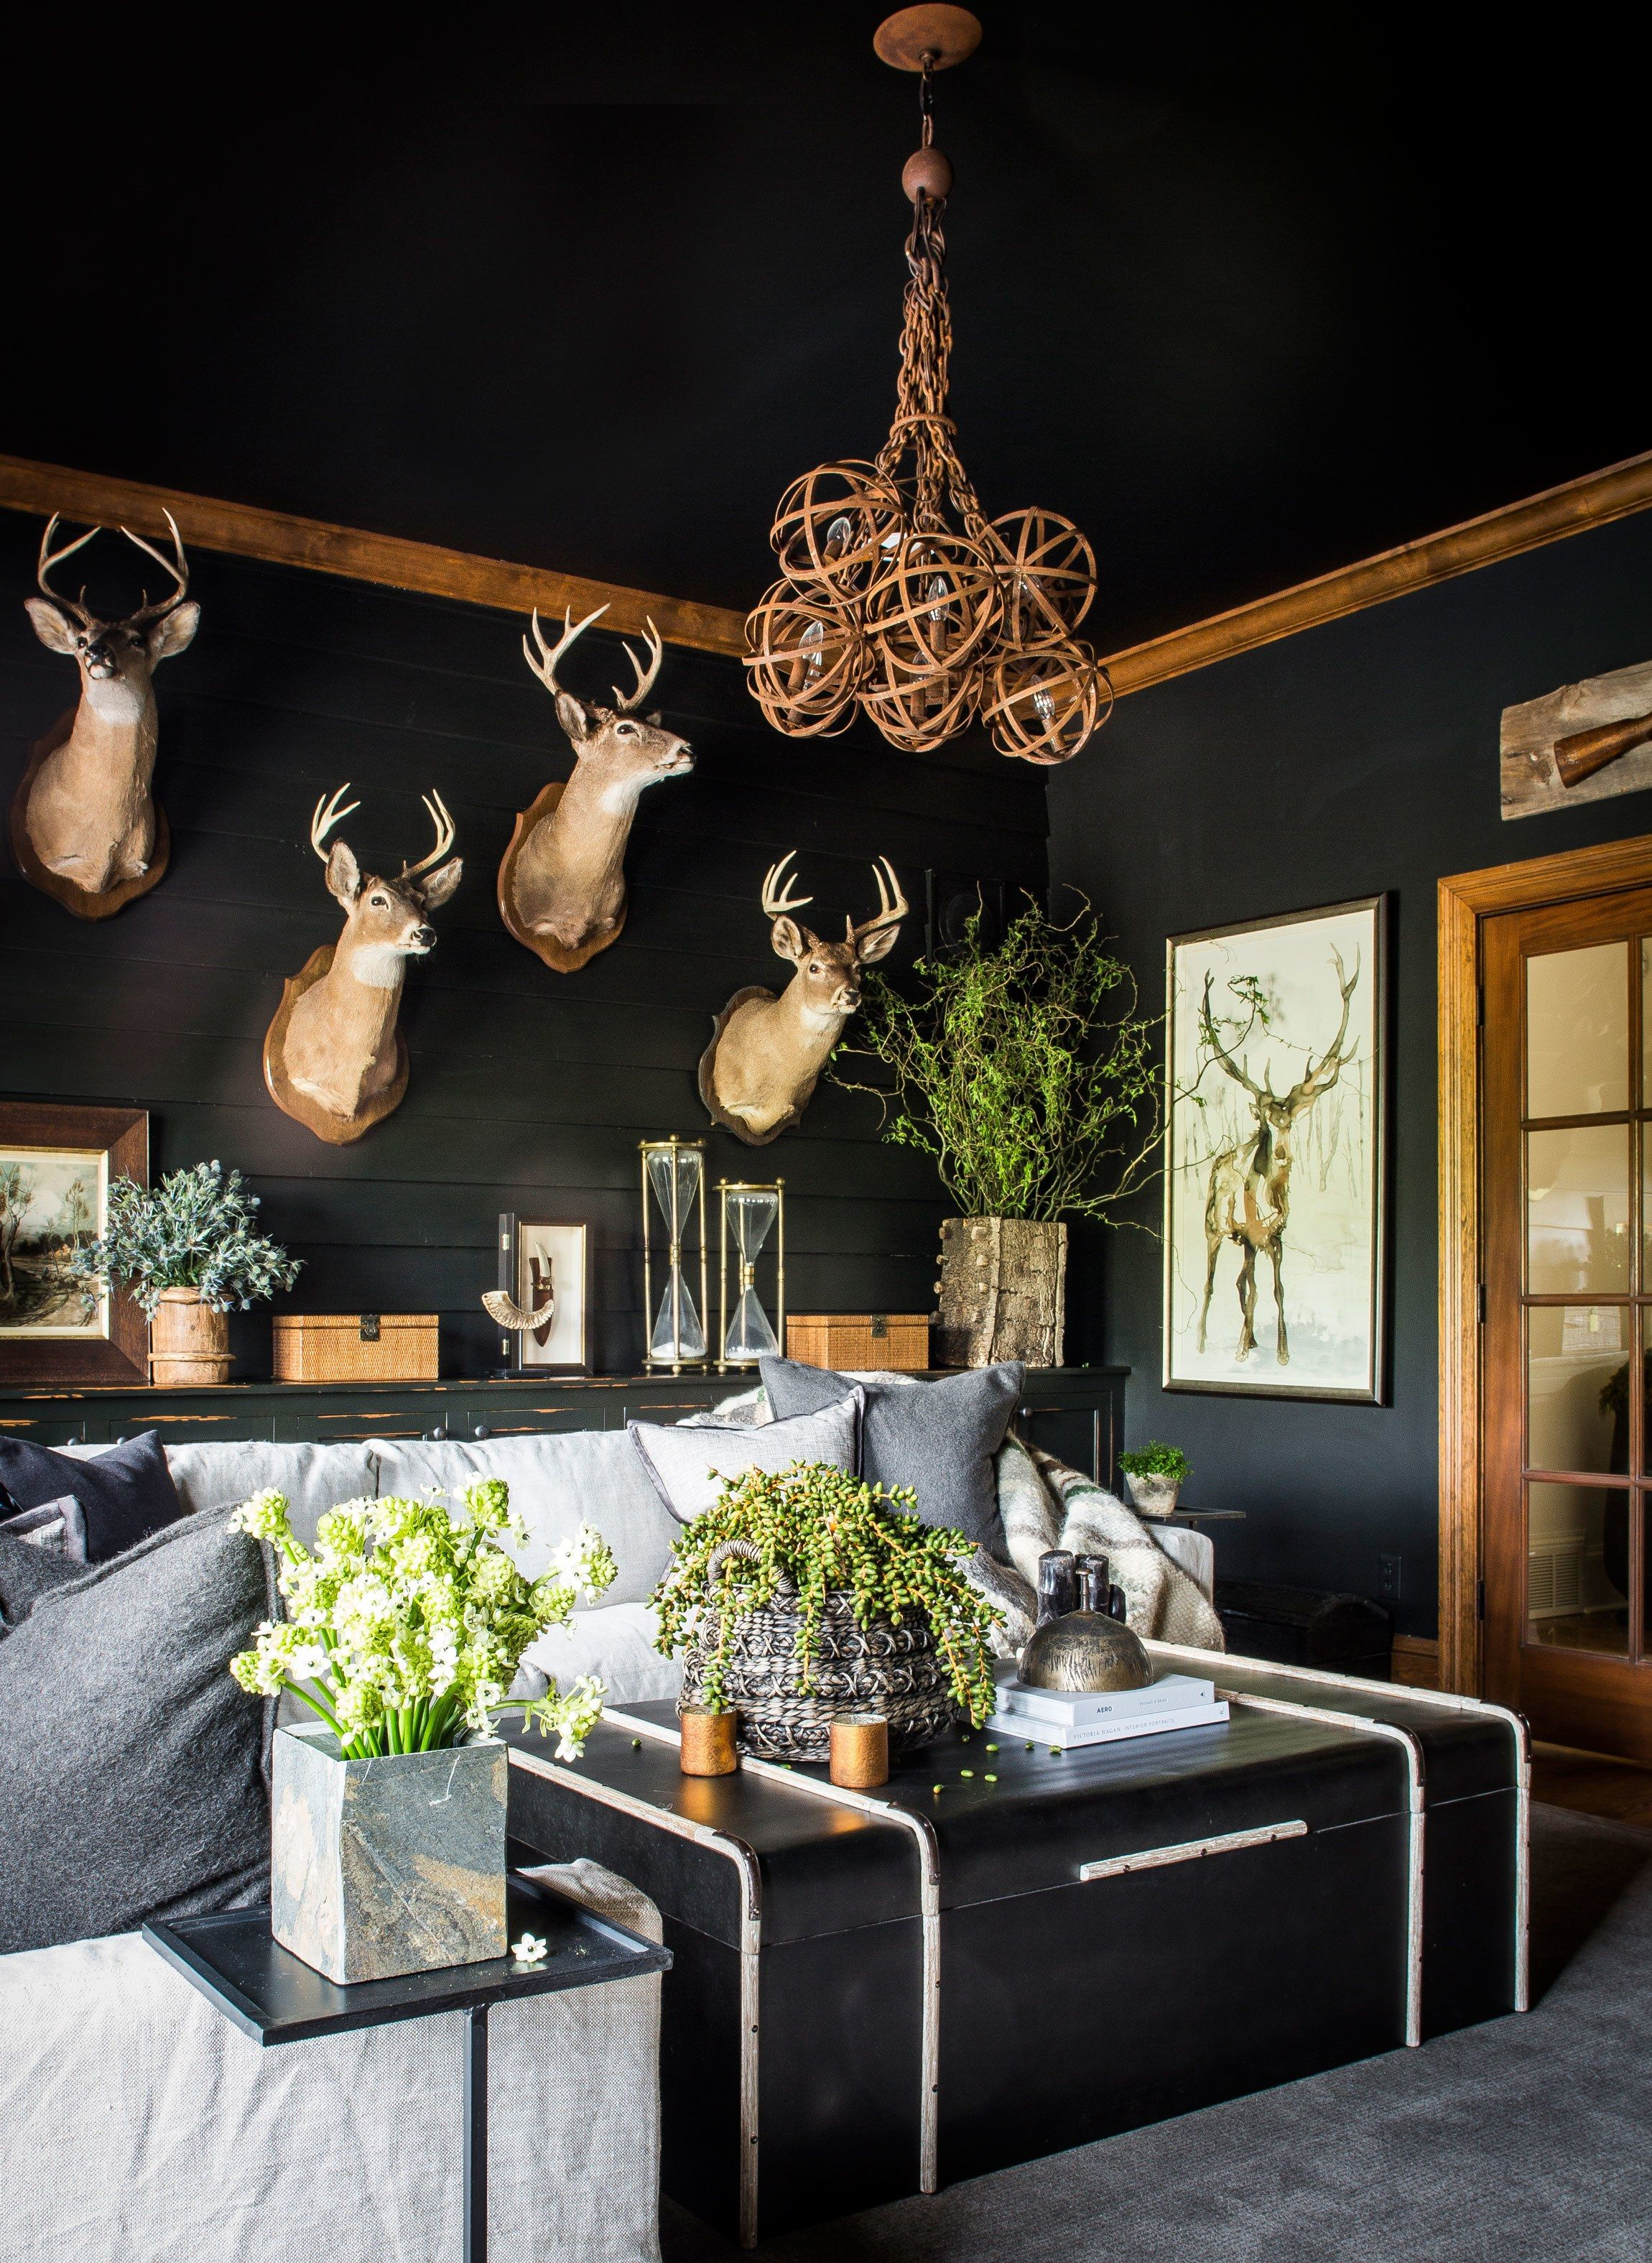 How To Use Black As A Neutral Hunting Decor Modern Lodge Decor Modern Lodge Hunting living room ideas